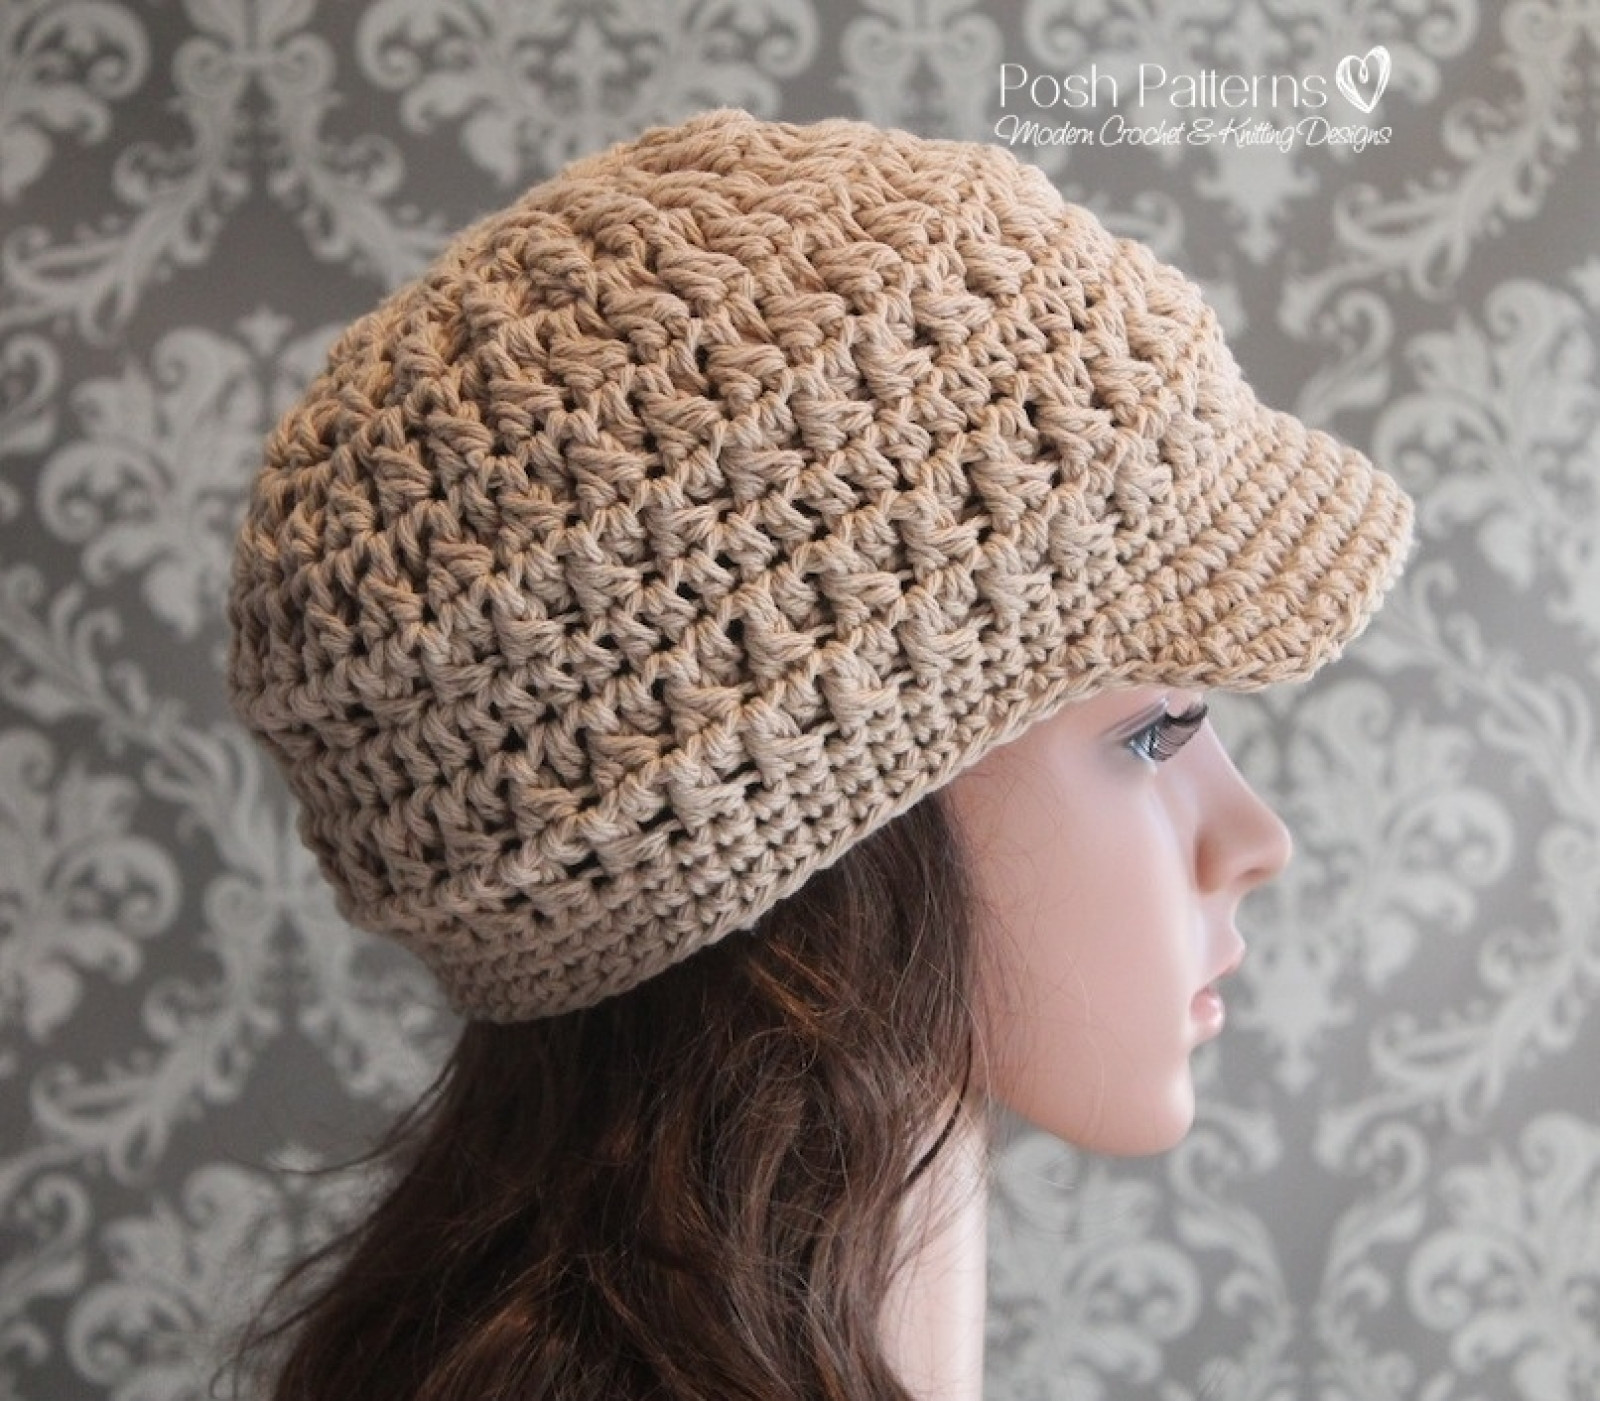 Lovely Cluster Crochet Newsboy Hat Pattern Free Crochet Hat Patterns for Adults Of Incredible 50 Pics Free Crochet Hat Patterns for Adults